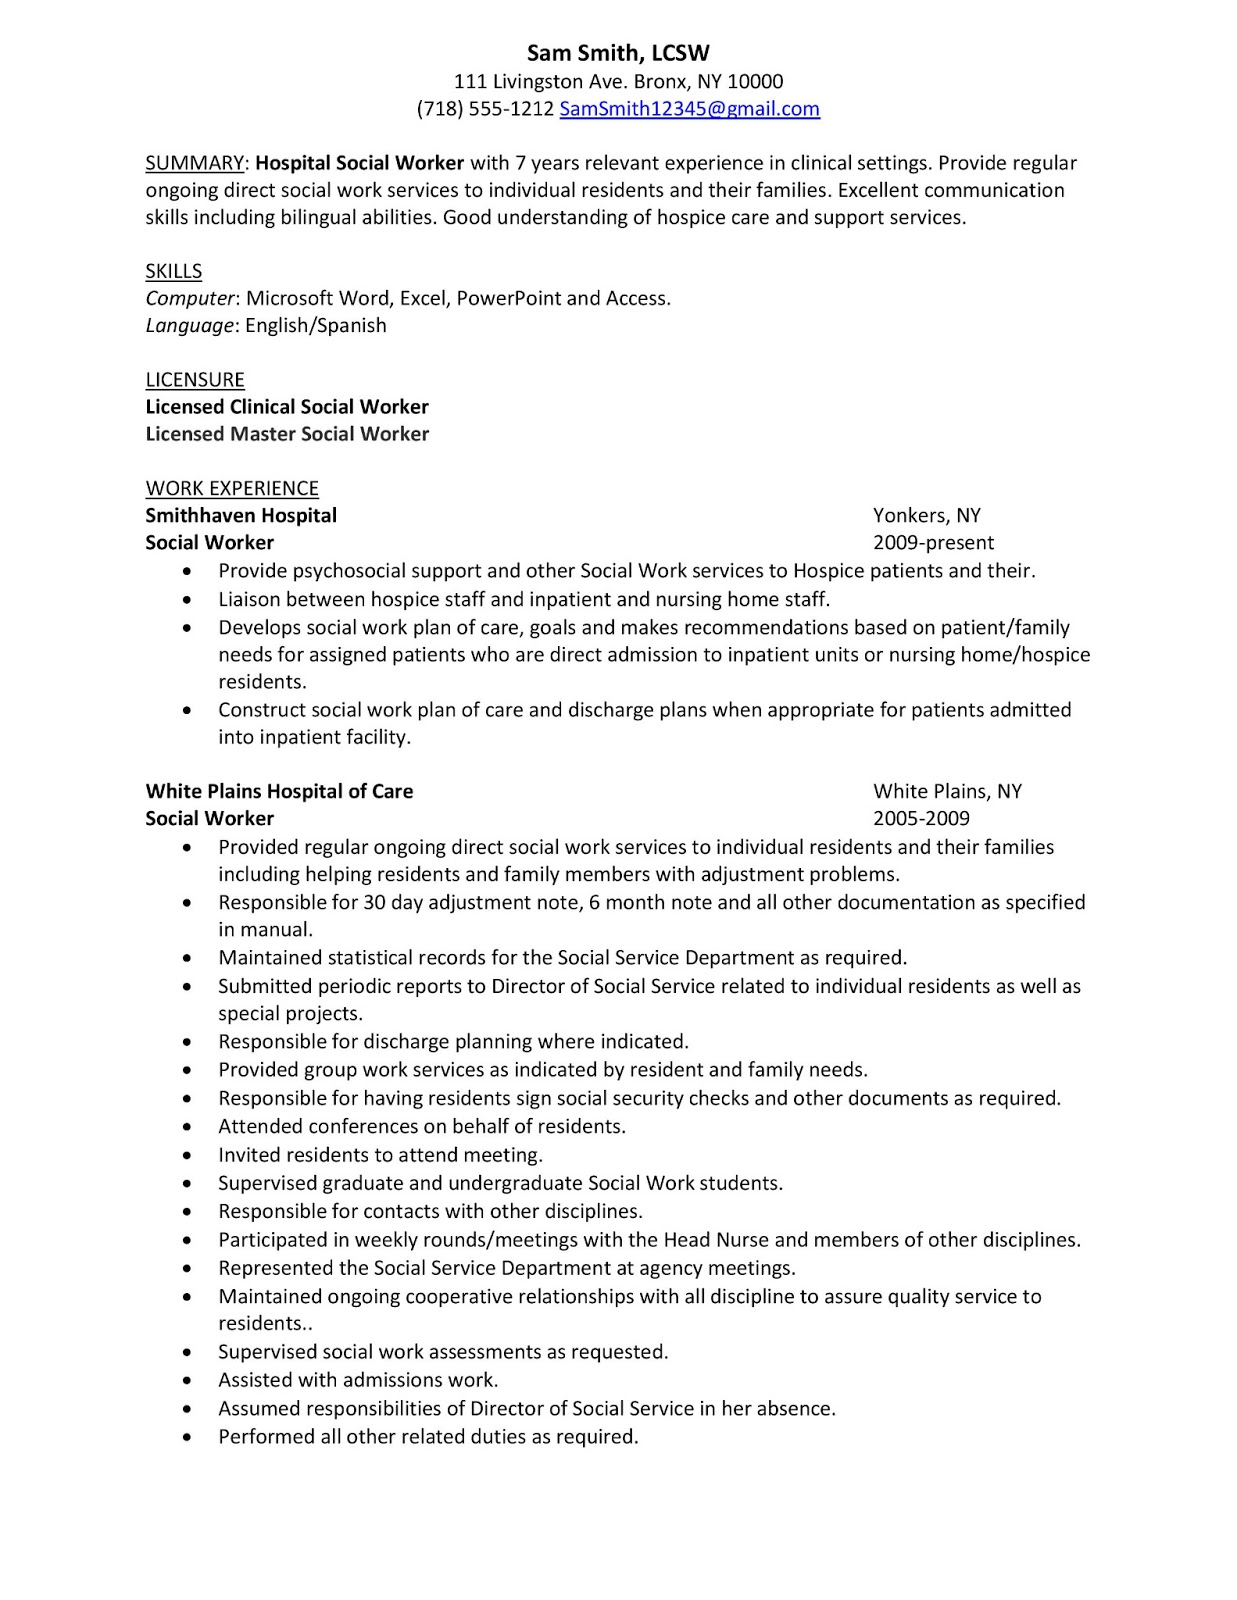 Delightful Sample Resume: Hospital Social Worker Inside Social Work Resumes